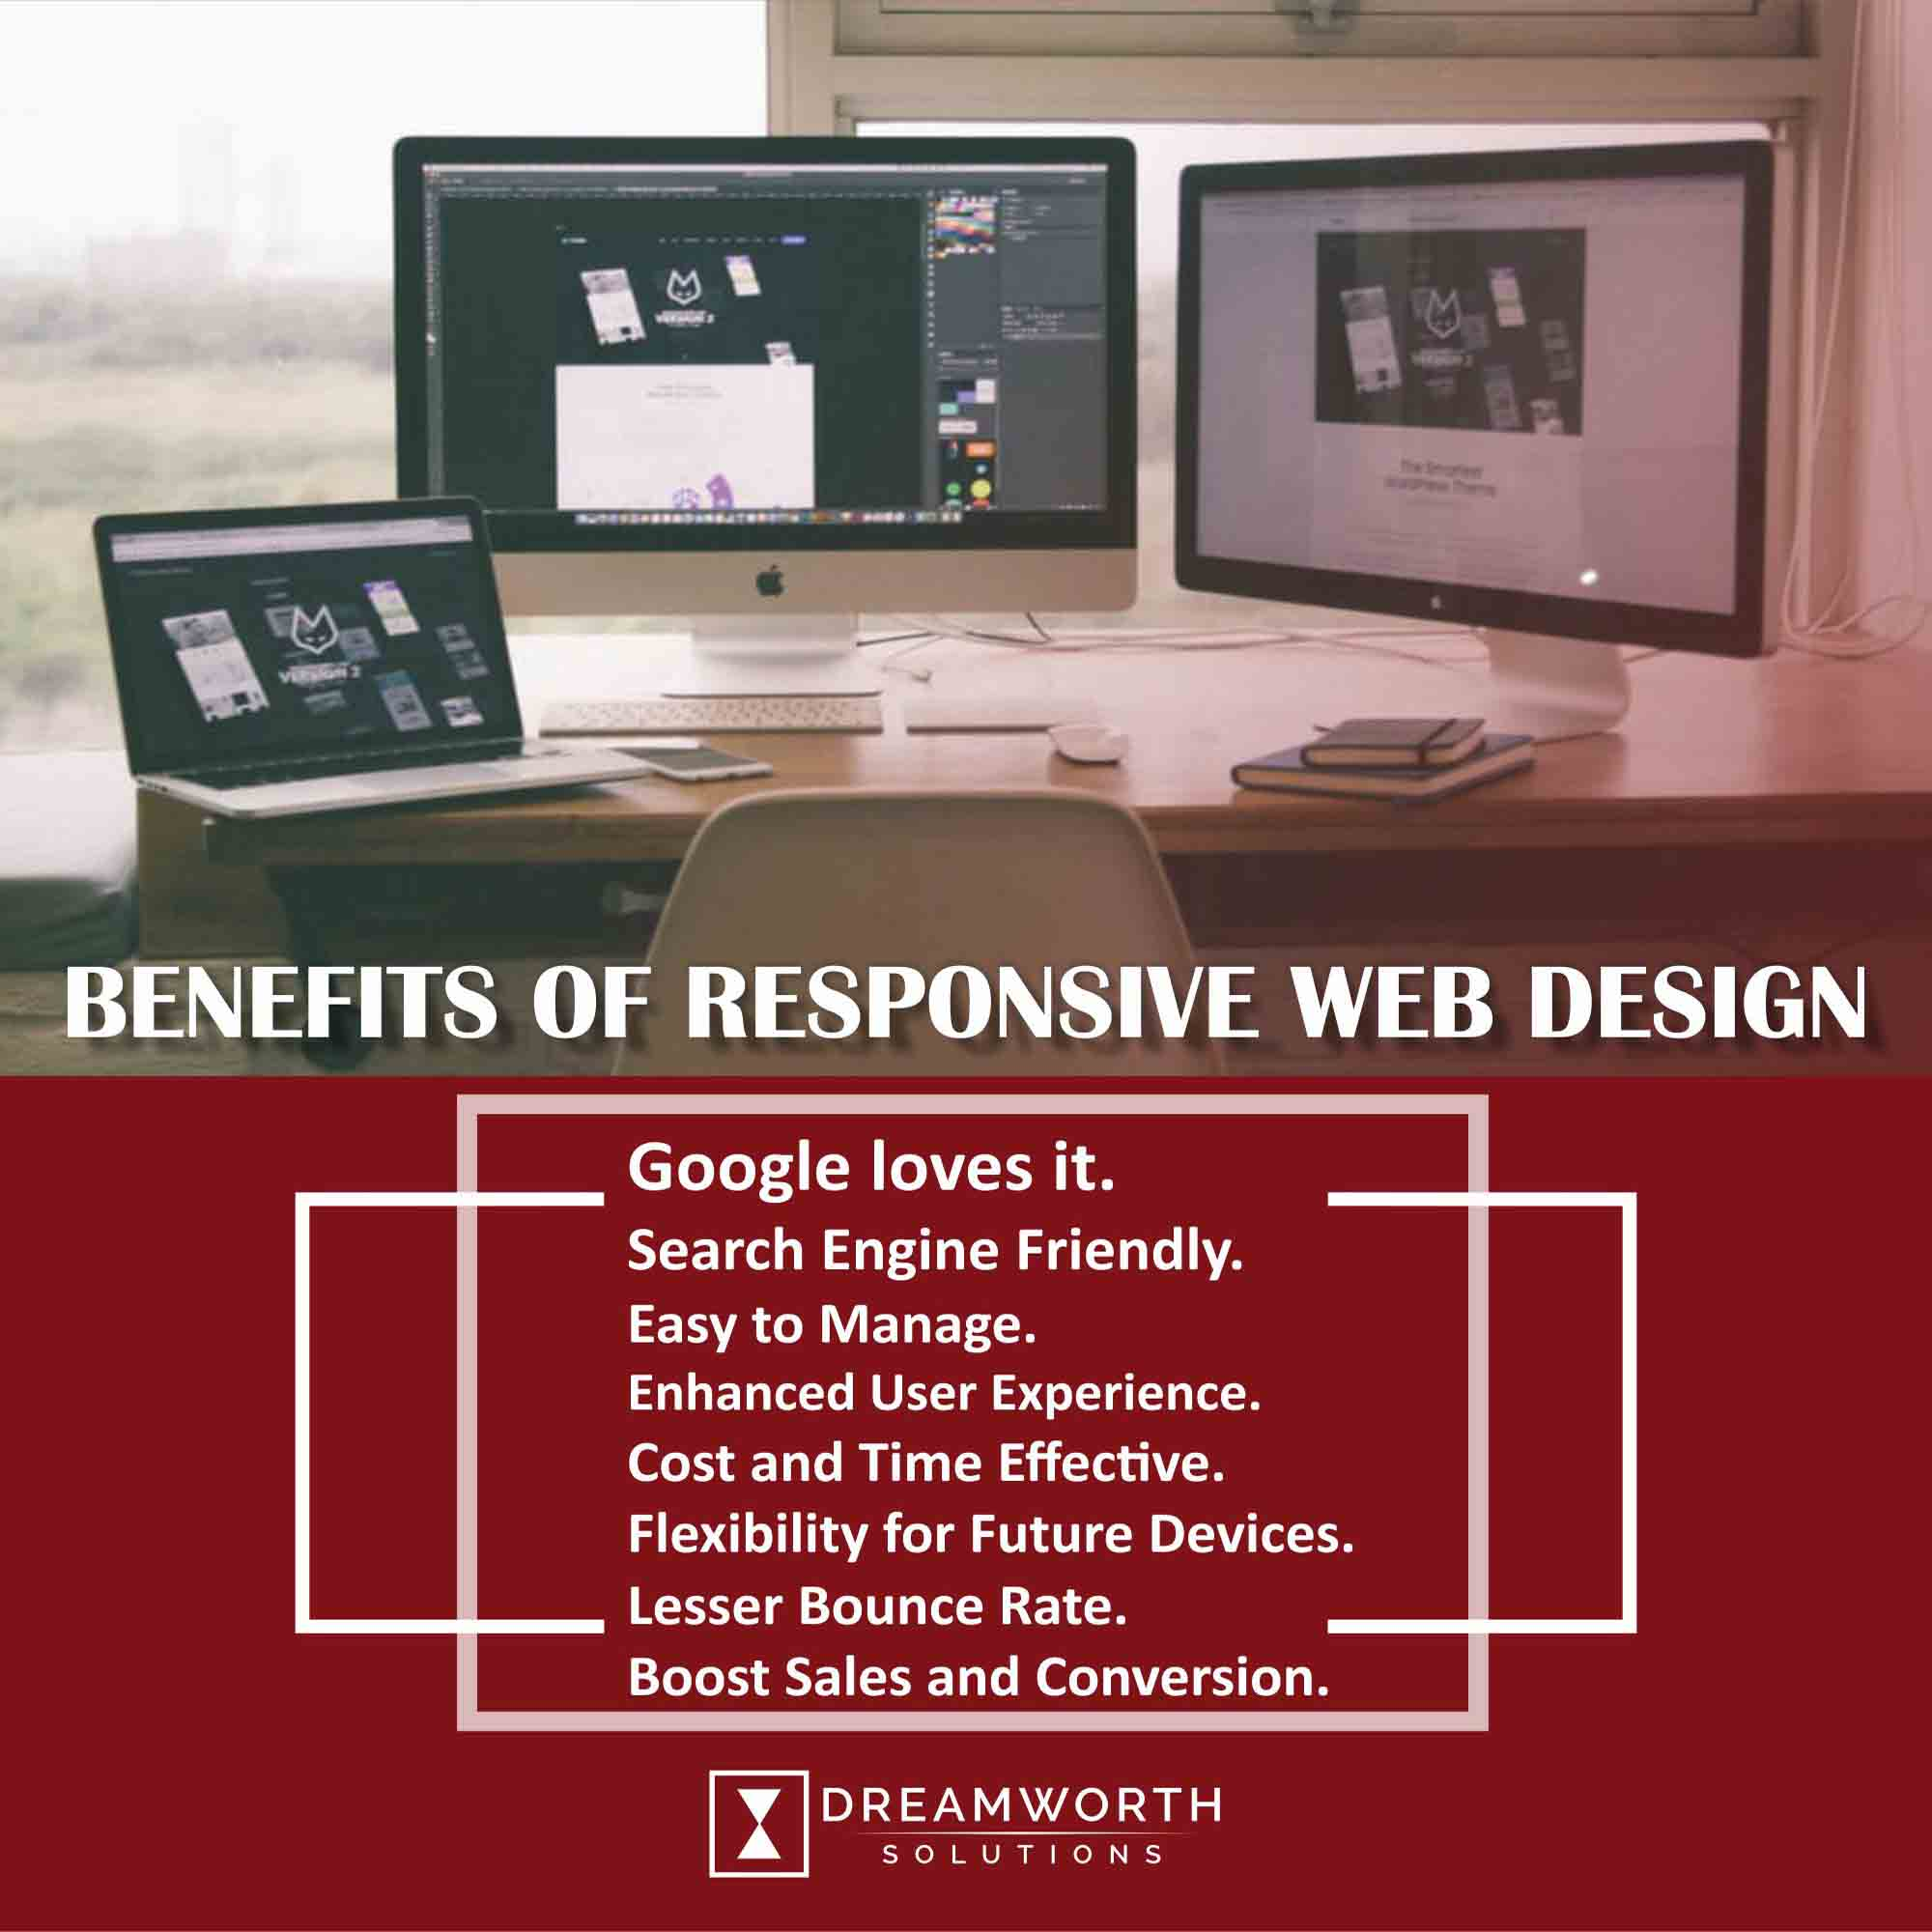 Dreamworth Solutions is the leading web Design Company in Pune. It provides web design that is responsive